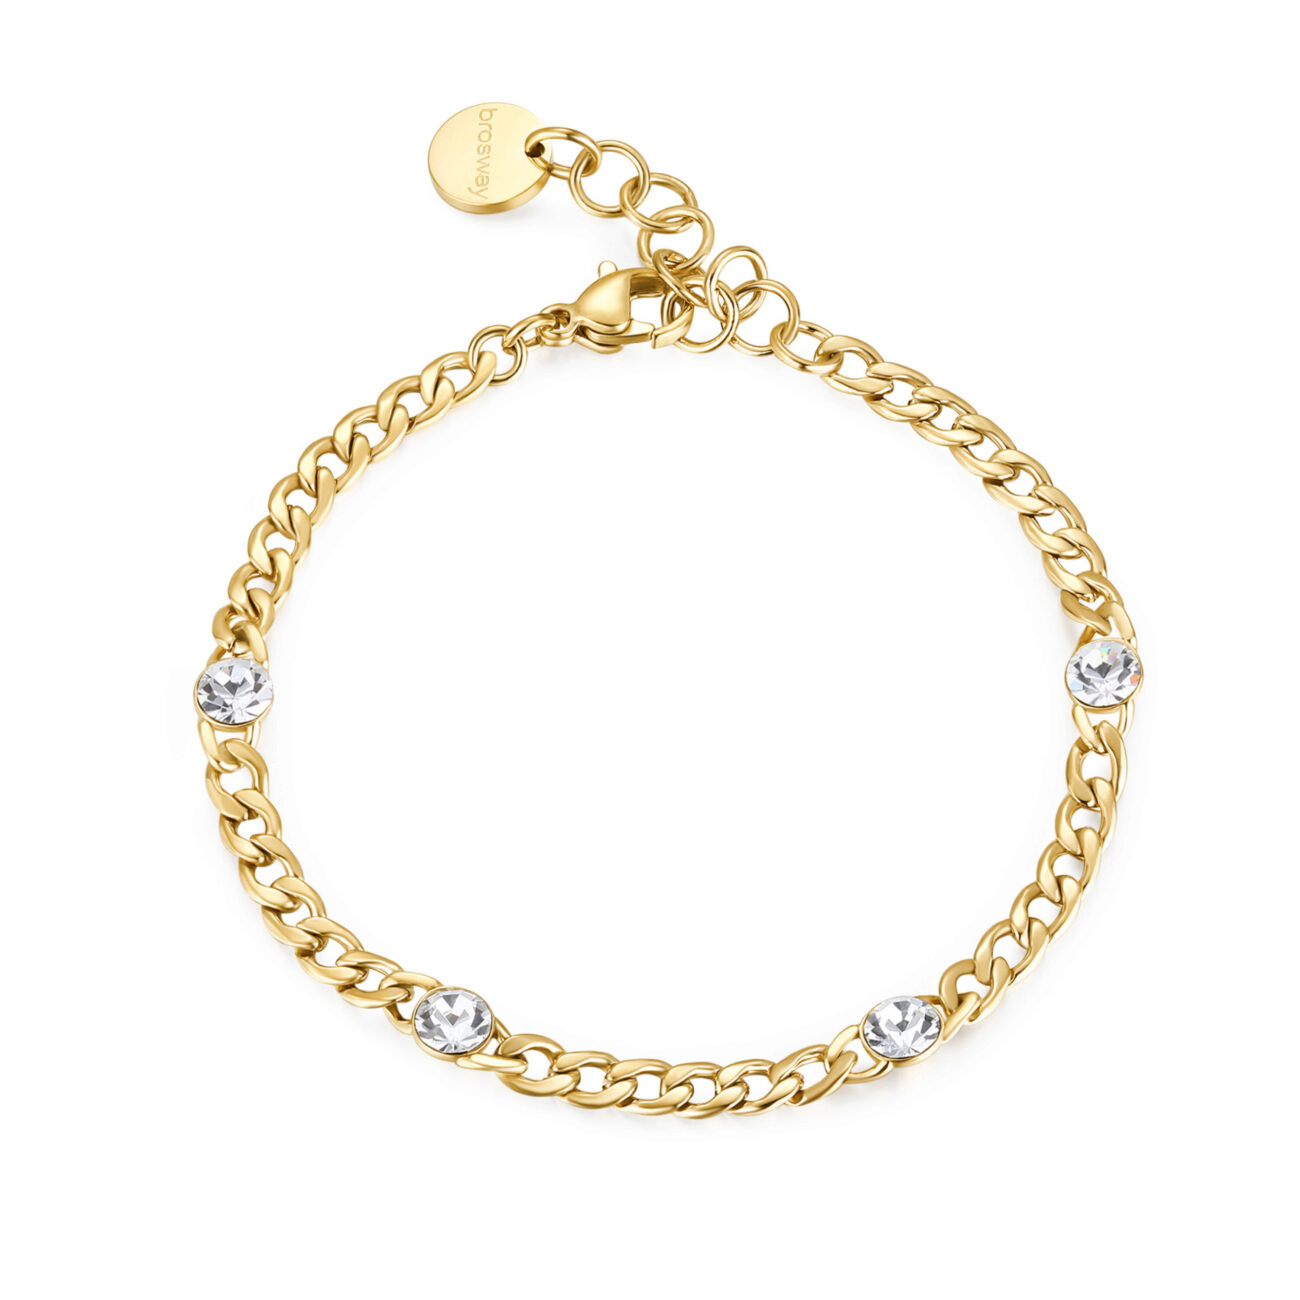 316L stainless steel bracelet and gold finishes with crystals.